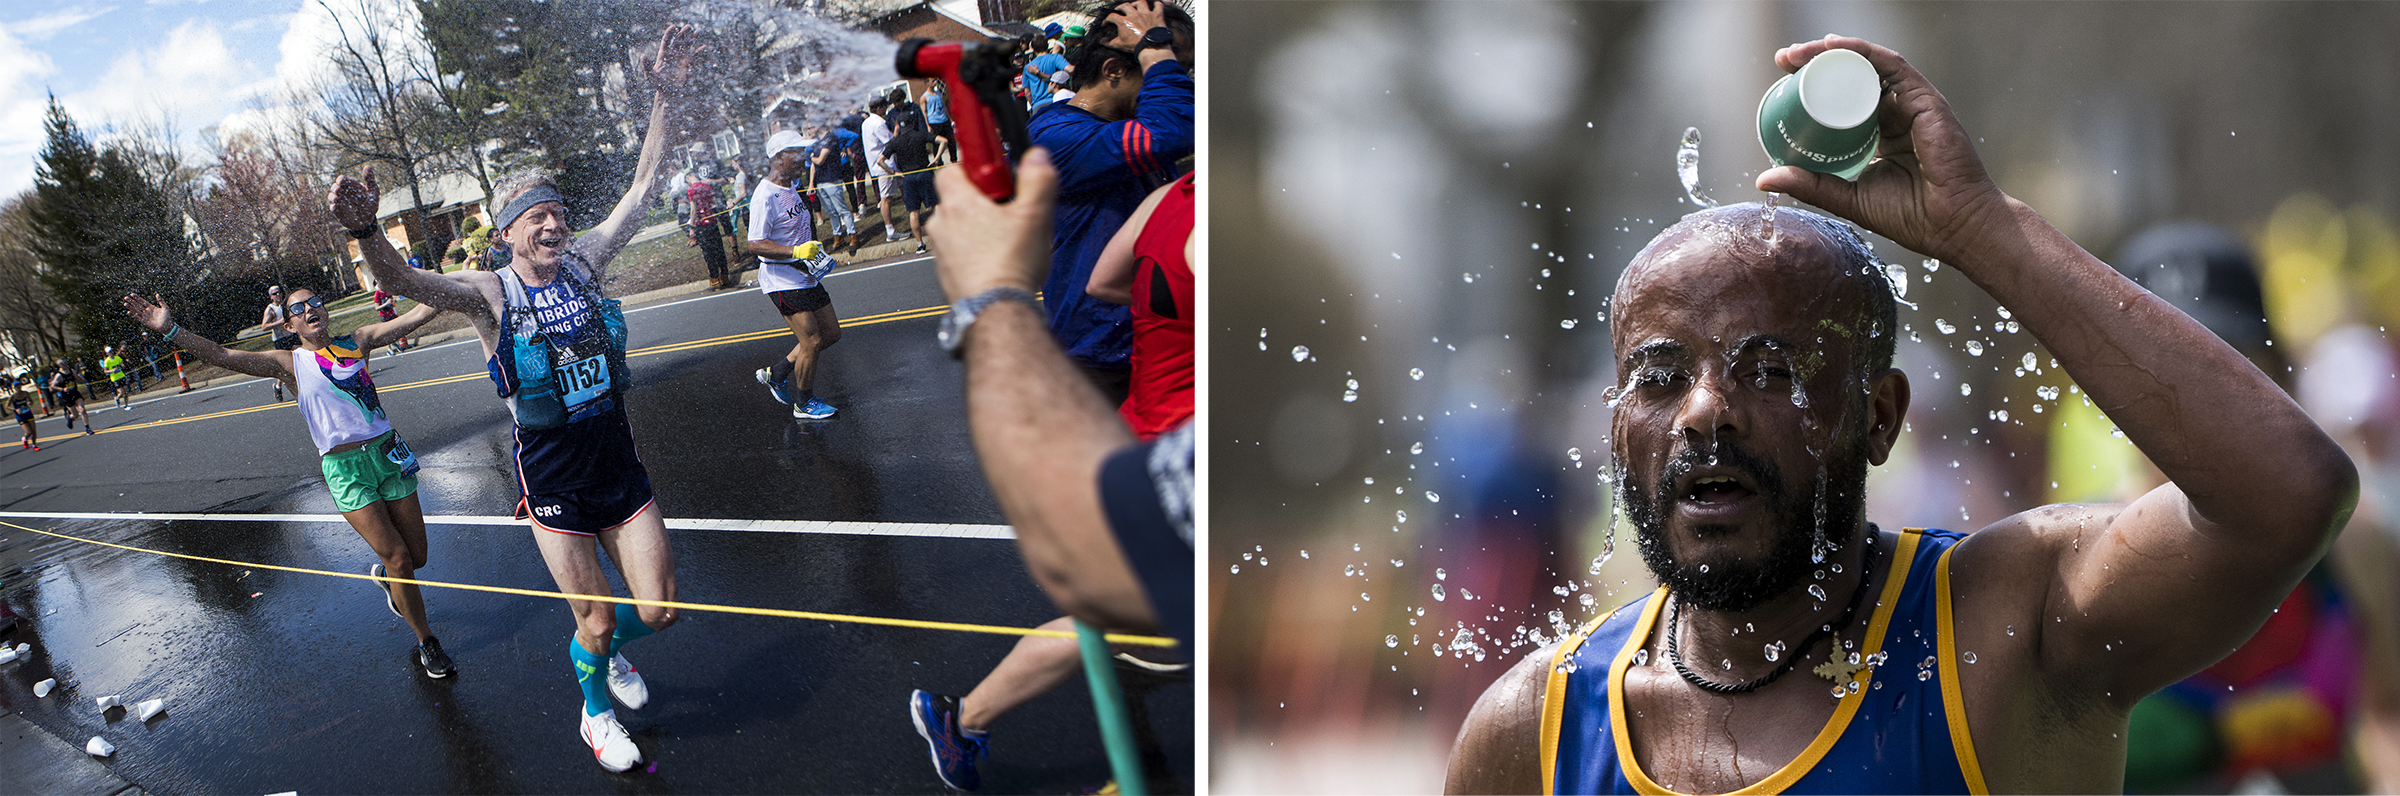 Runners cool off while making their way up Heartbreak Hill during the 2019 Boston Marathon along Commonwealth Avenue in Newton on April 15, 2019.